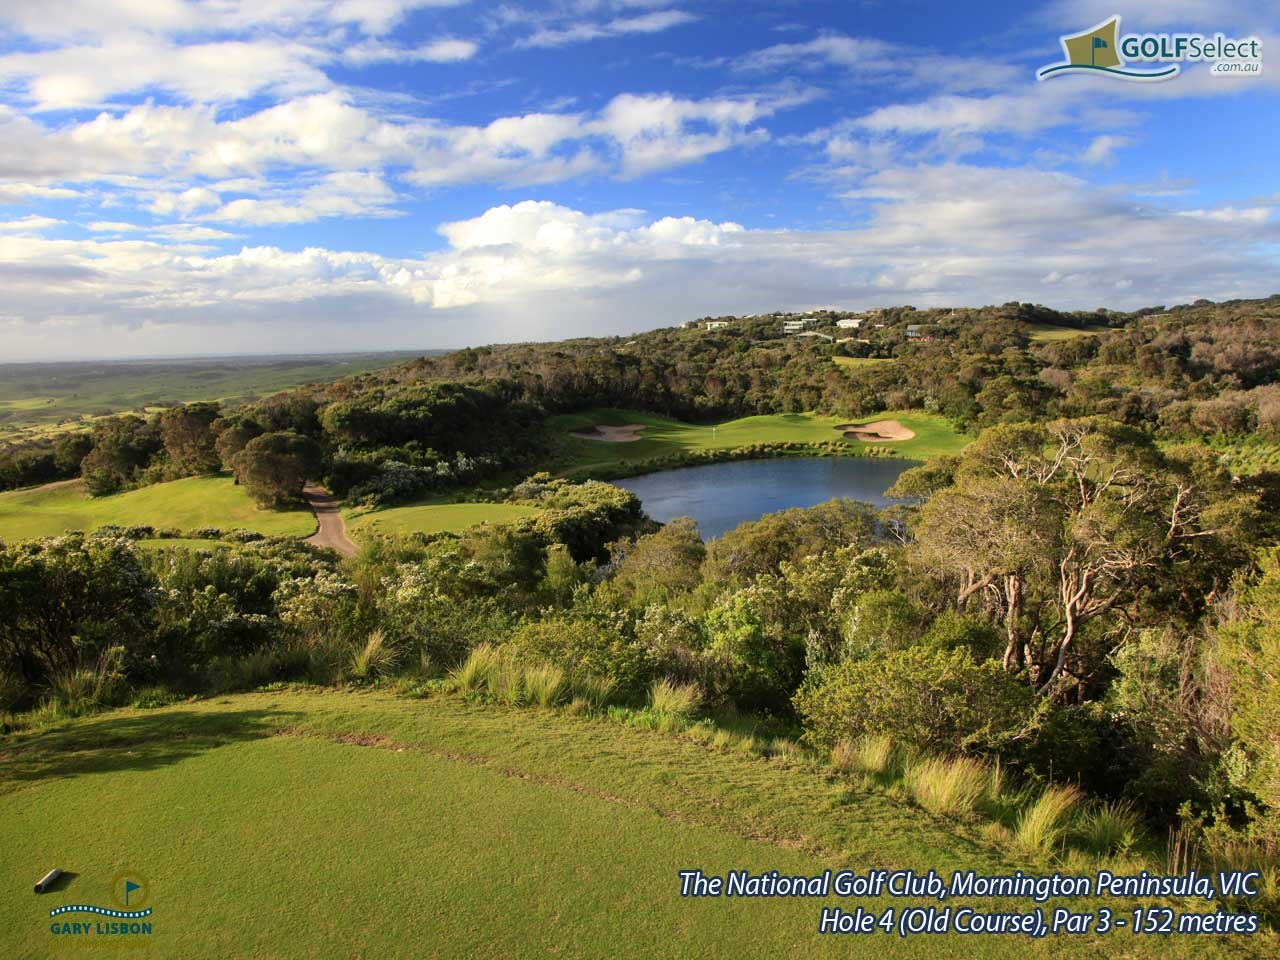 The National Golf Club (Old Course) Hole 4, Par 3, 152 metres